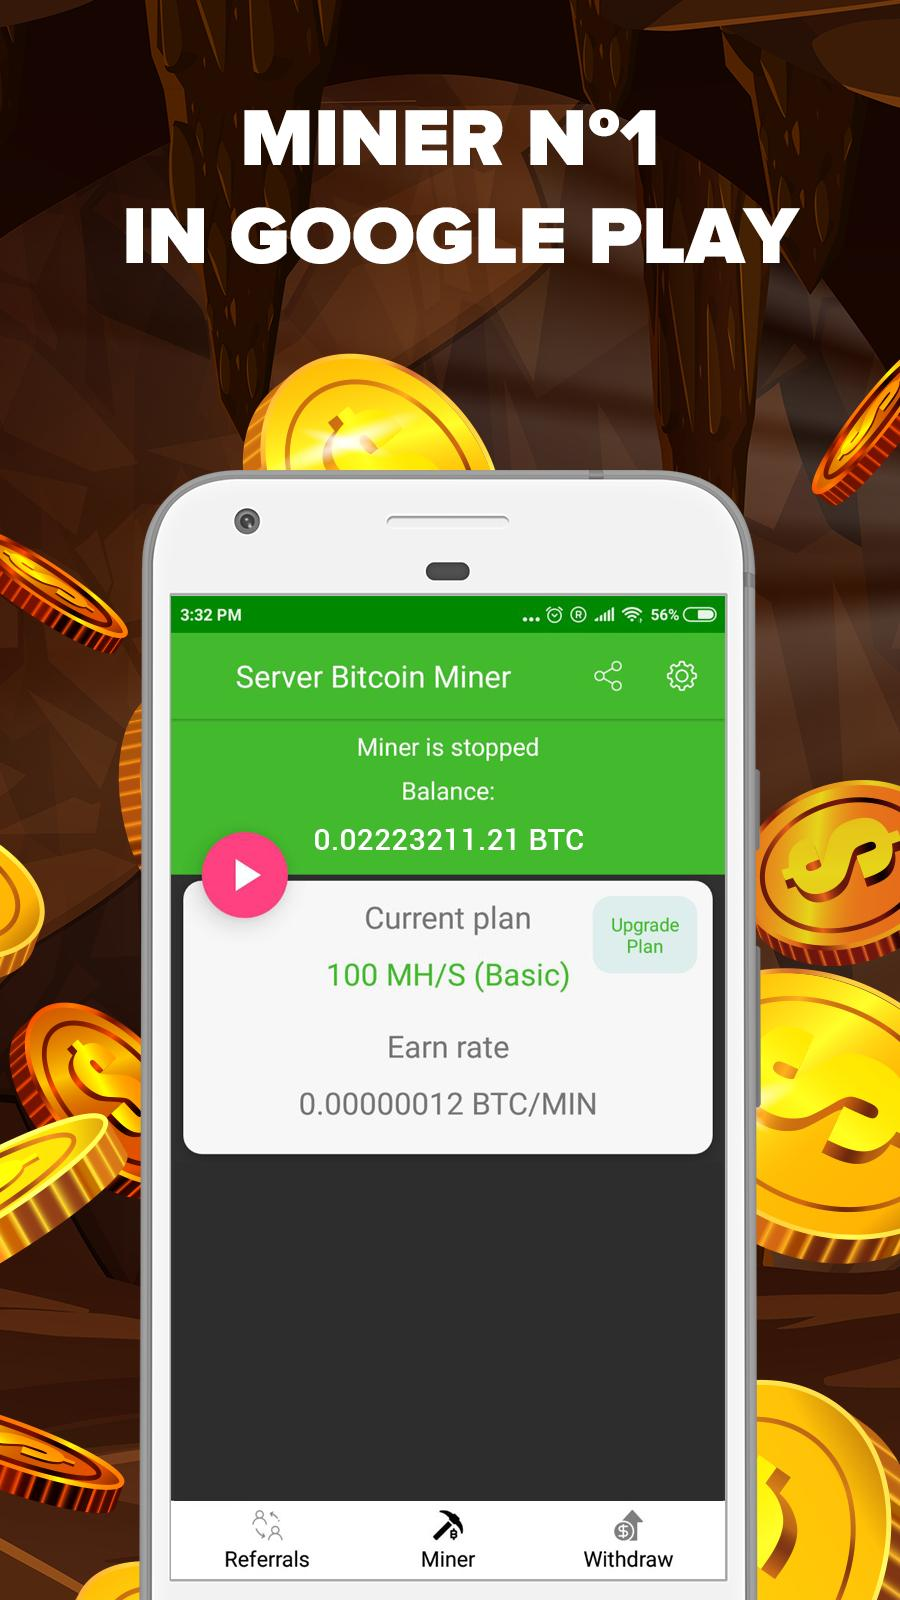 Bitcoins mining android file varzim vs aves betting expert soccer